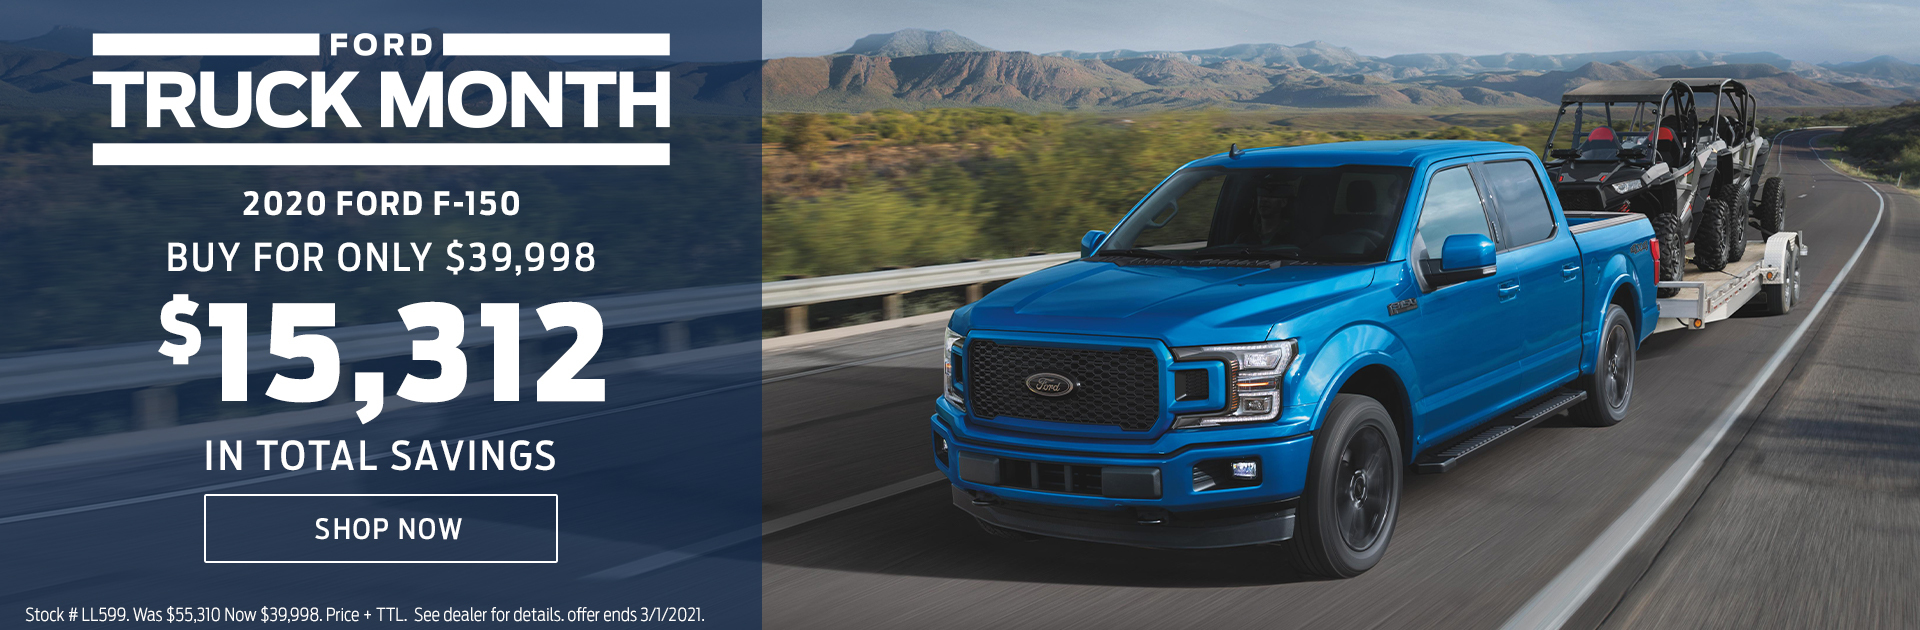 Truck Month F150 (2)